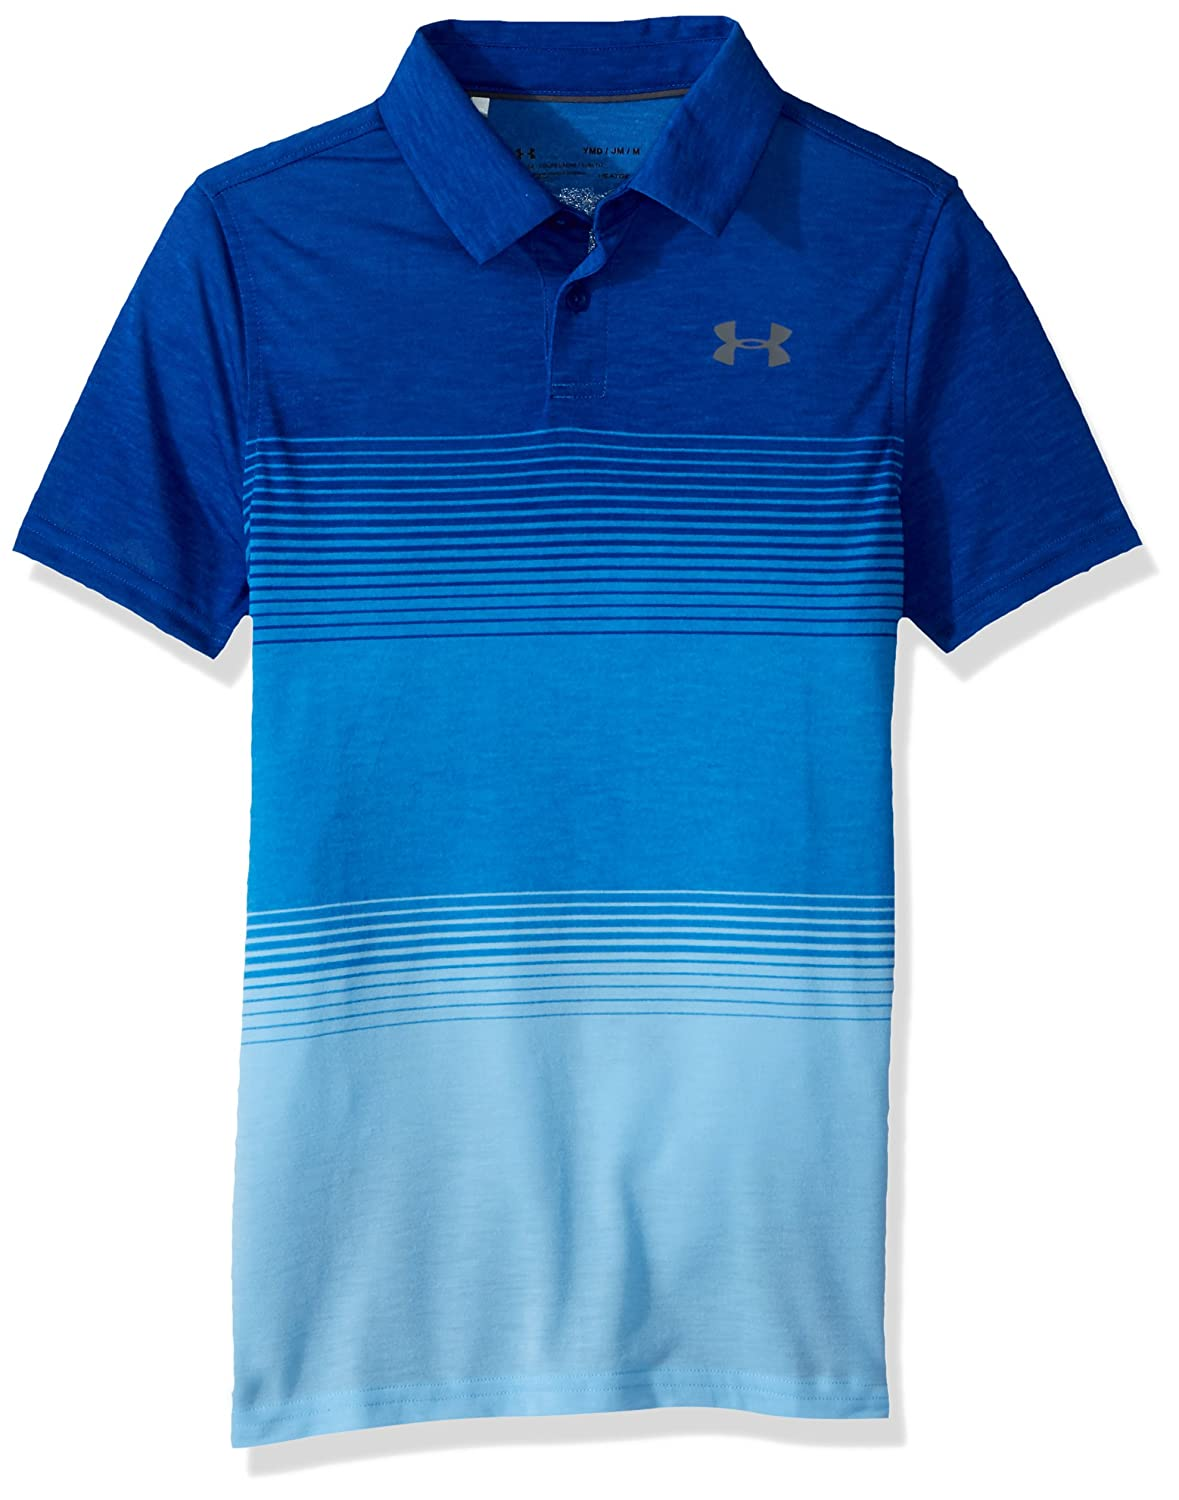 Under Armour Boys' Js Threadborne Gradient Polo Under Armour Apparel 1325653